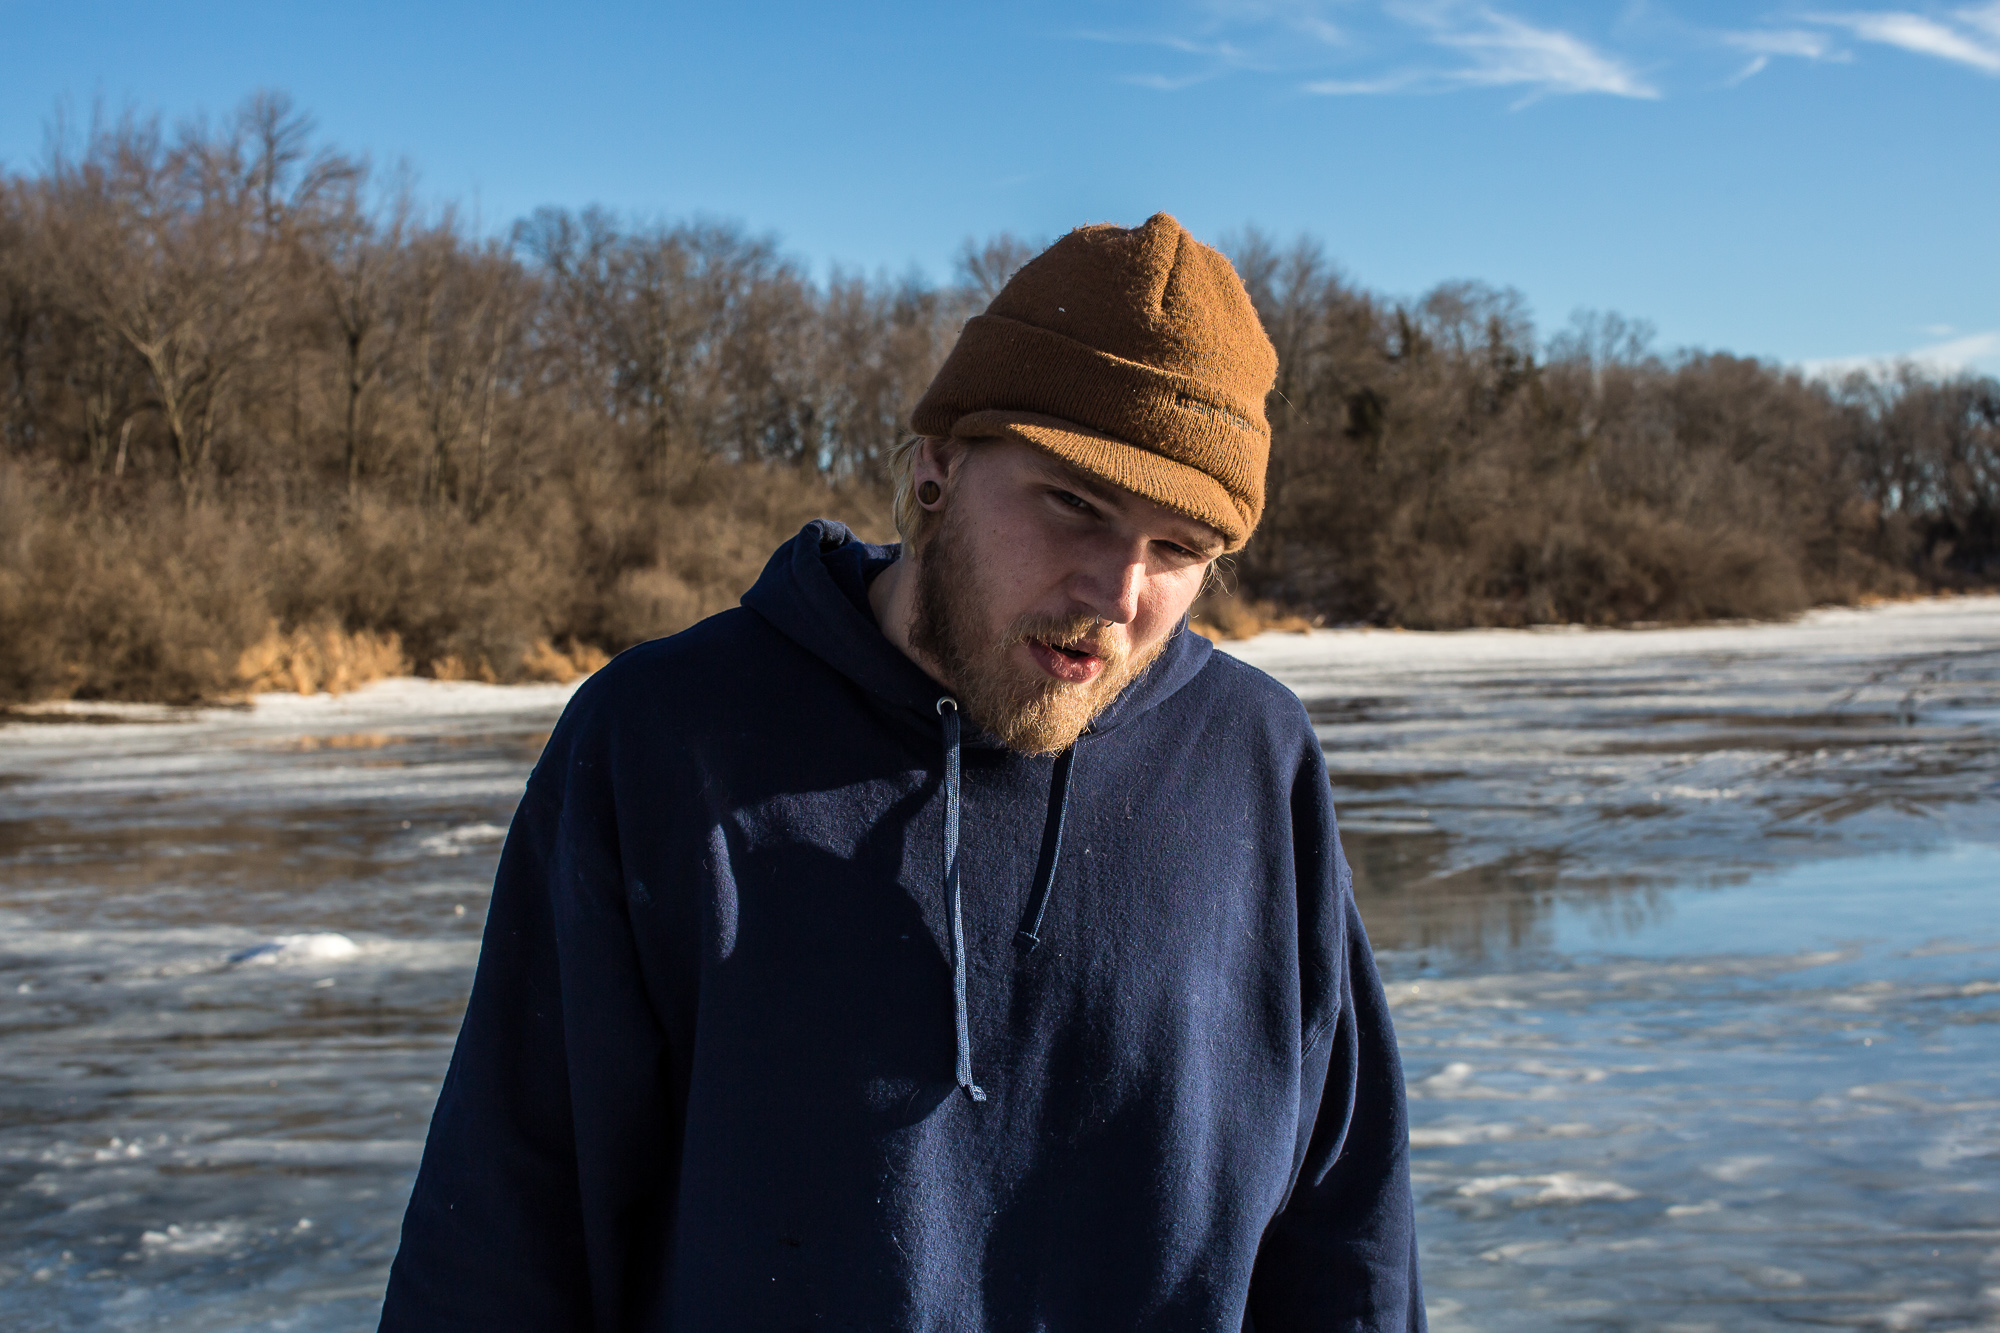 Jesse Smith ice fishing at Briggs Woods pond on Sunday, January 19, 2014, in Webster City, IA.